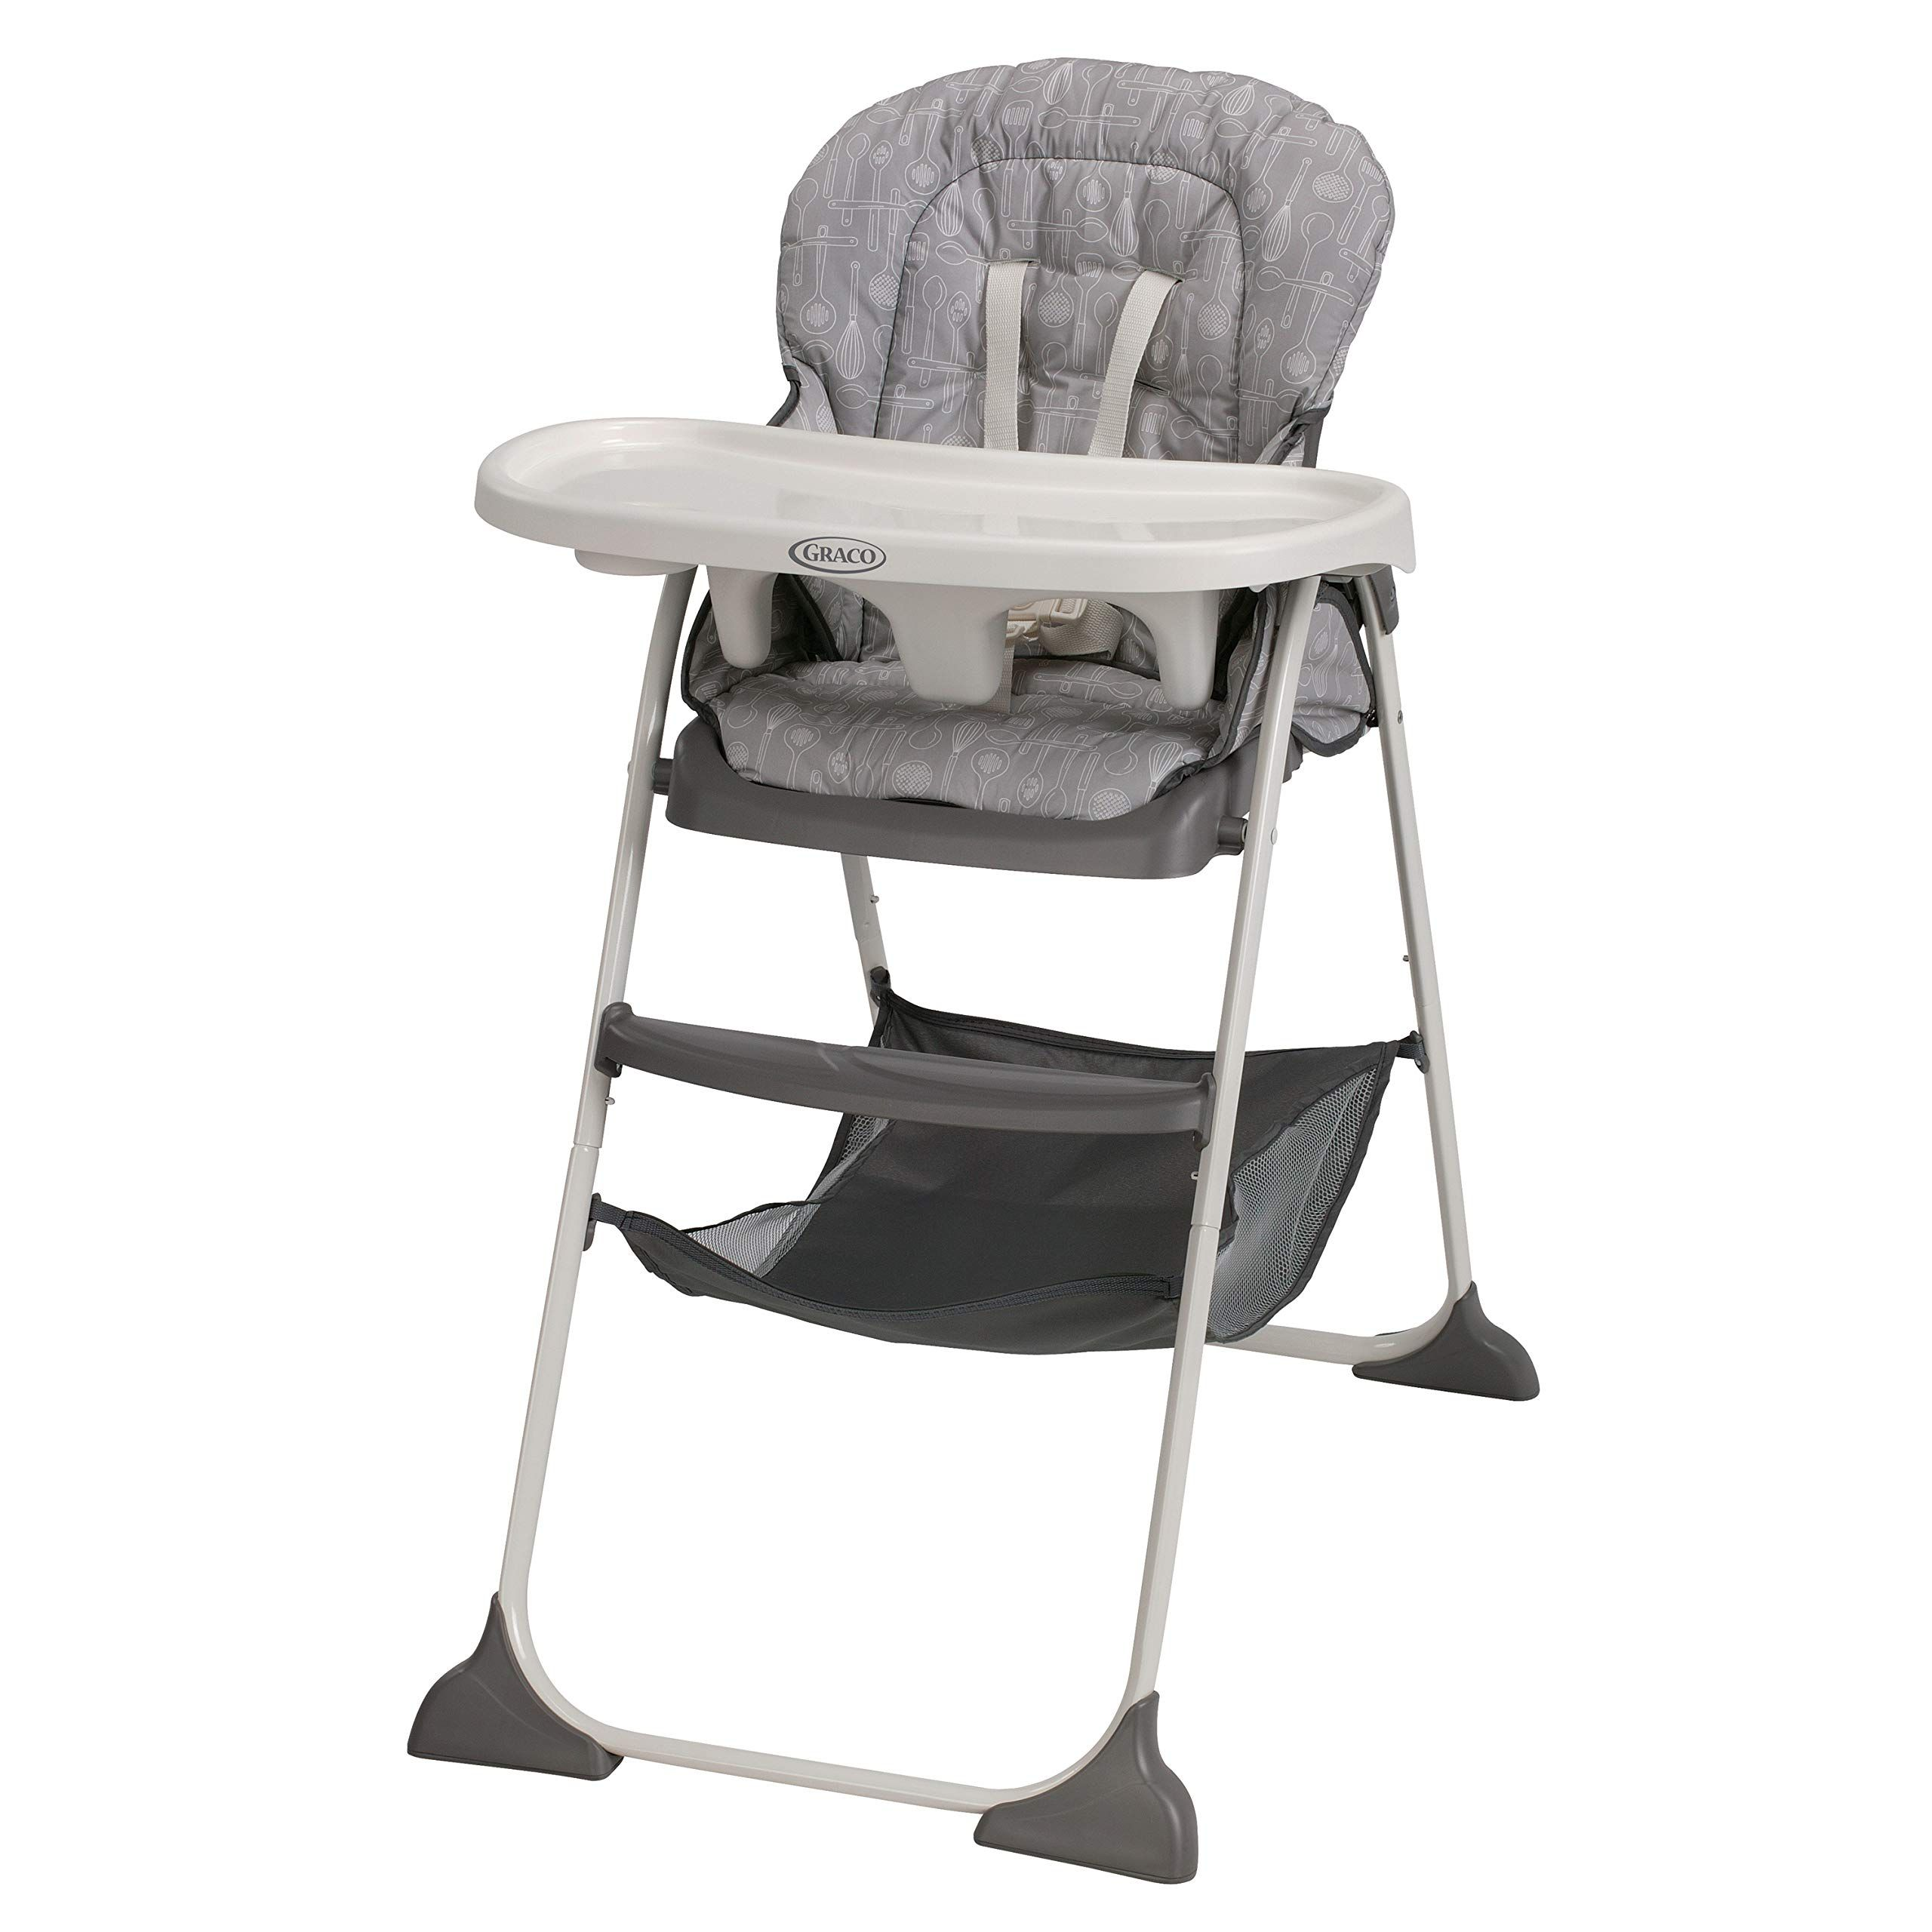 Graco Slim Snacker High Chair Ultra Compact High Chair Whisk Folding High Chair Baby High Chair Best High Chairs